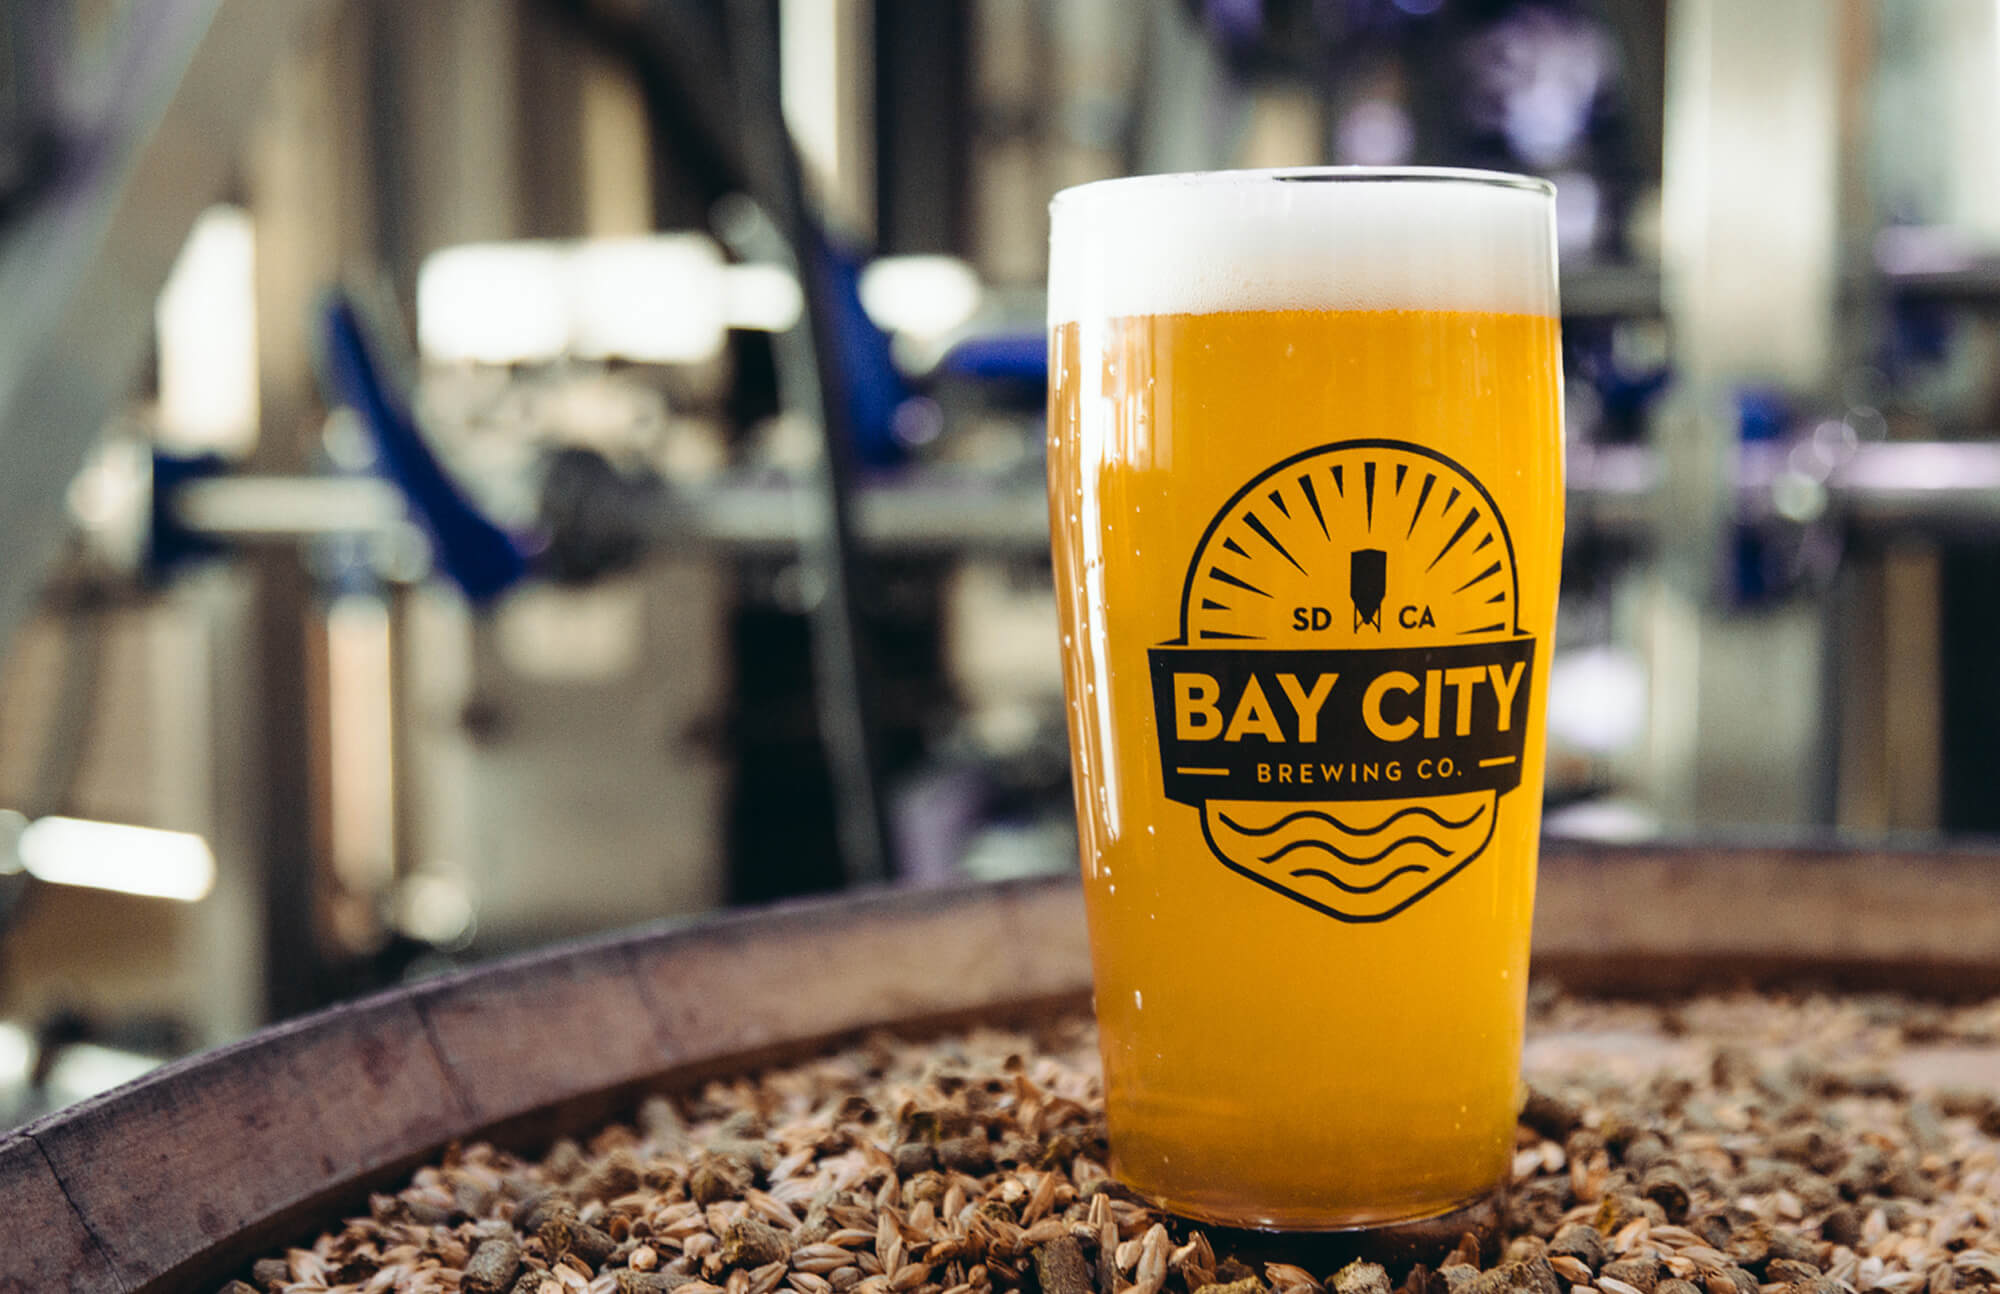 bay-city-brewing-company-sandiego-2